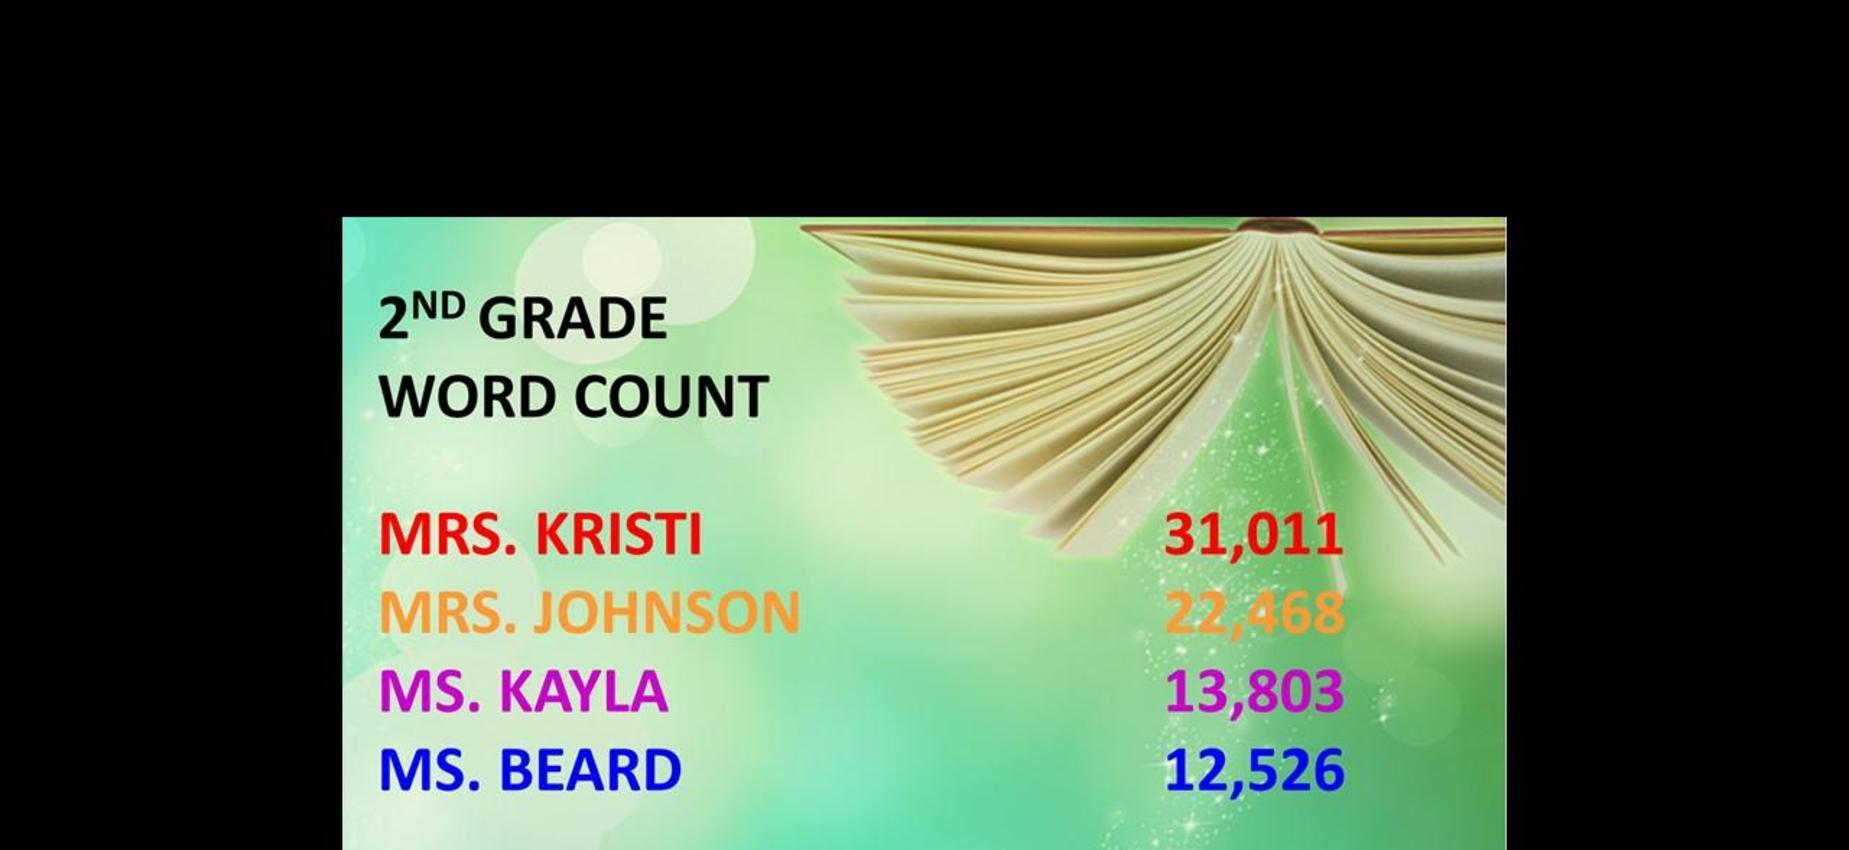 2nd Grade Word Count